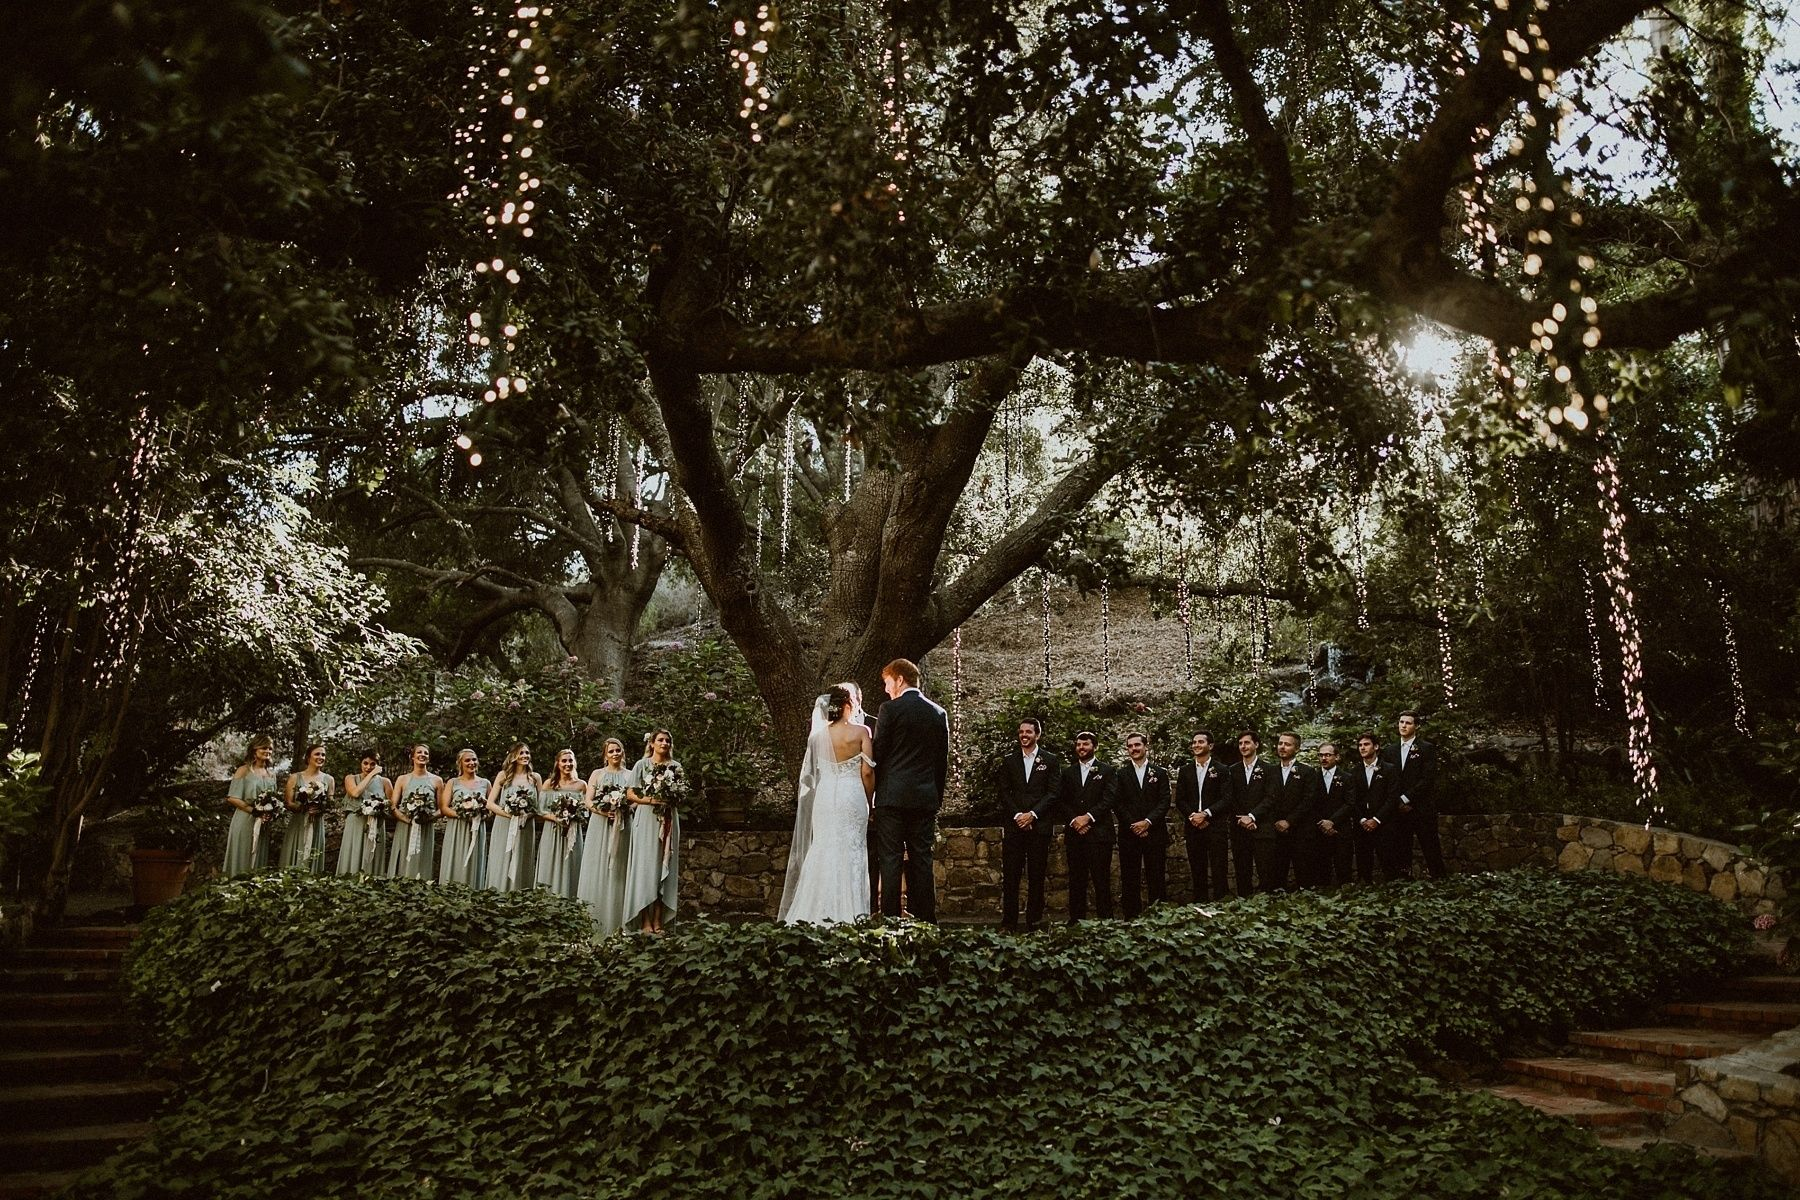 Dresses for 12 year olds for a wedding  Earthy u Intimate Wedding in the Santa Monica Mountains  Oak tree